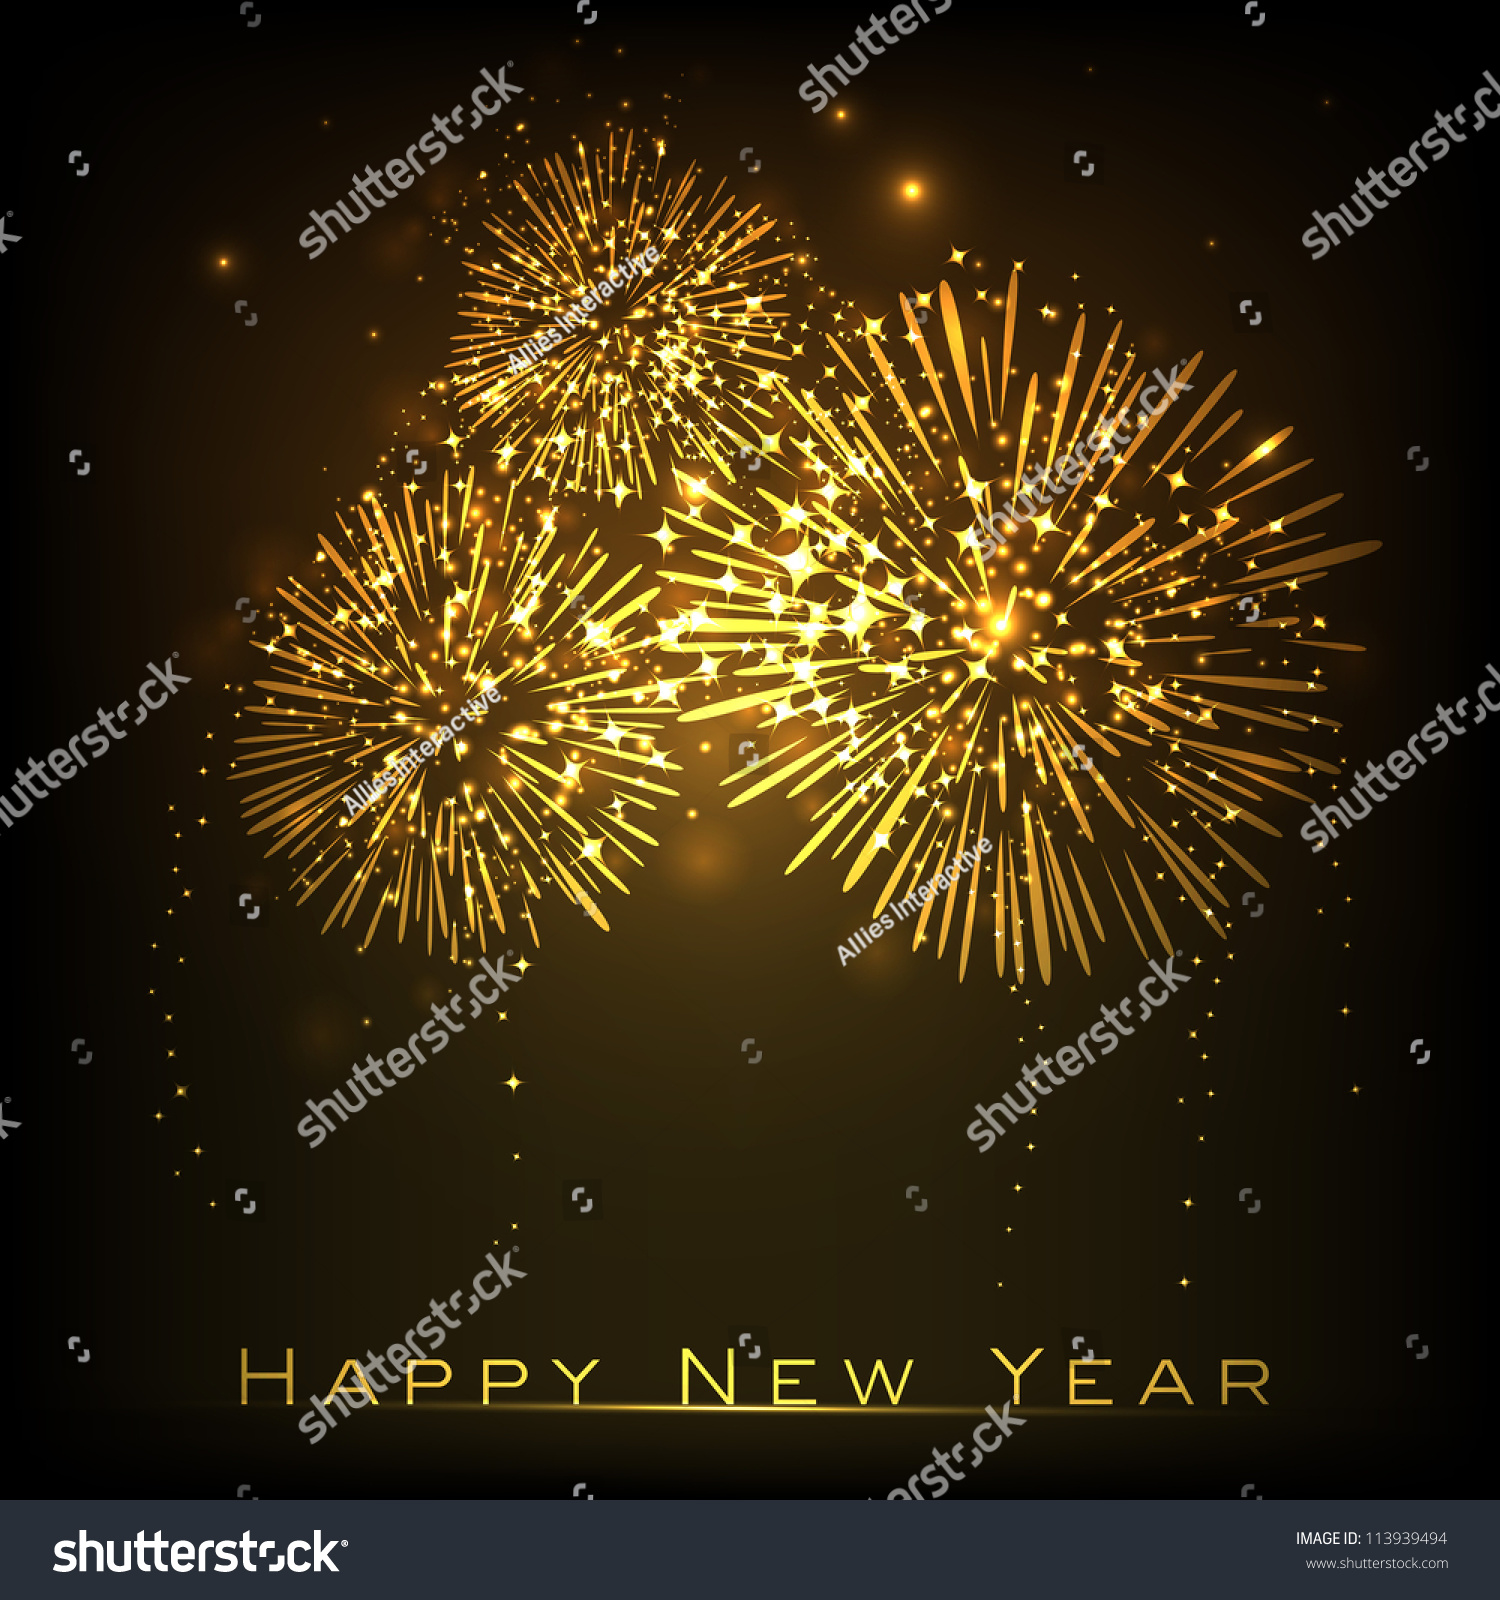 Tomb Rider Wallpaper: Happy New Year Celebration Background Eps Stock Vector